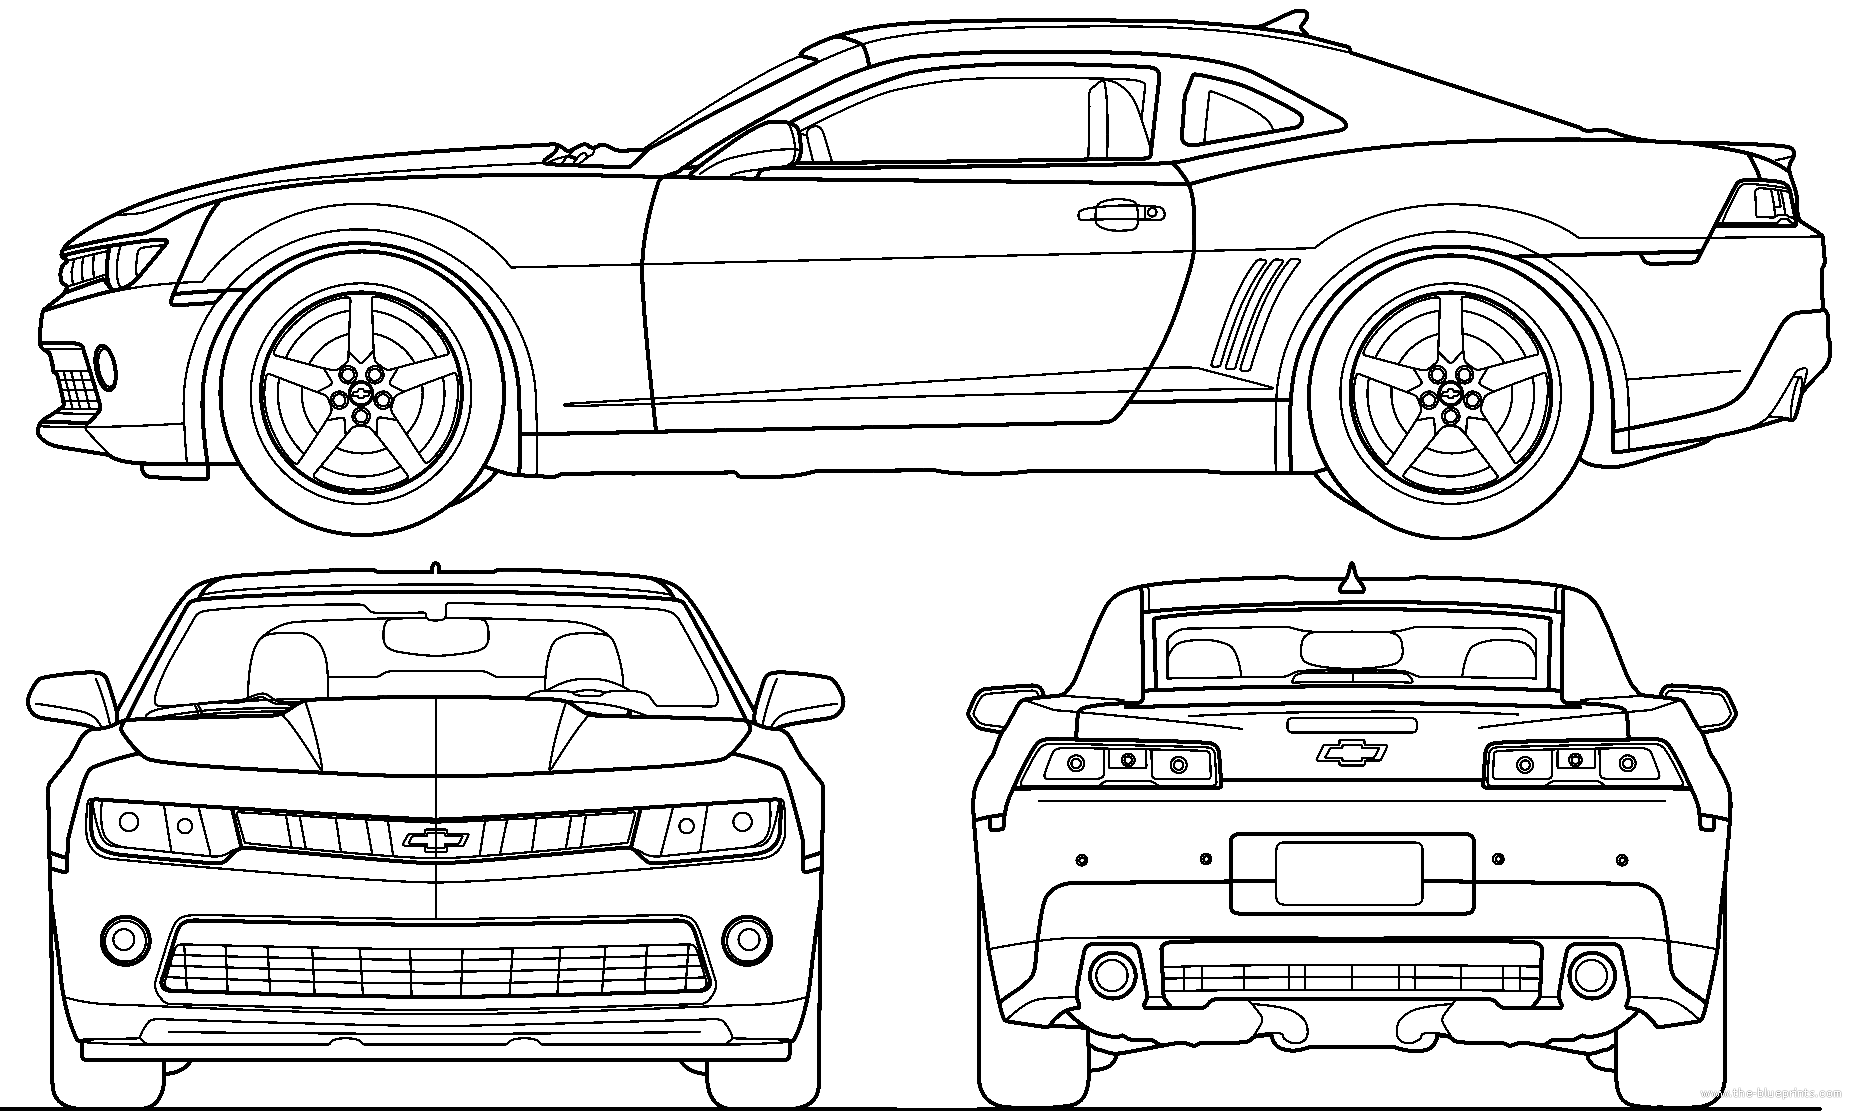 Blueprints Of Classic Cars